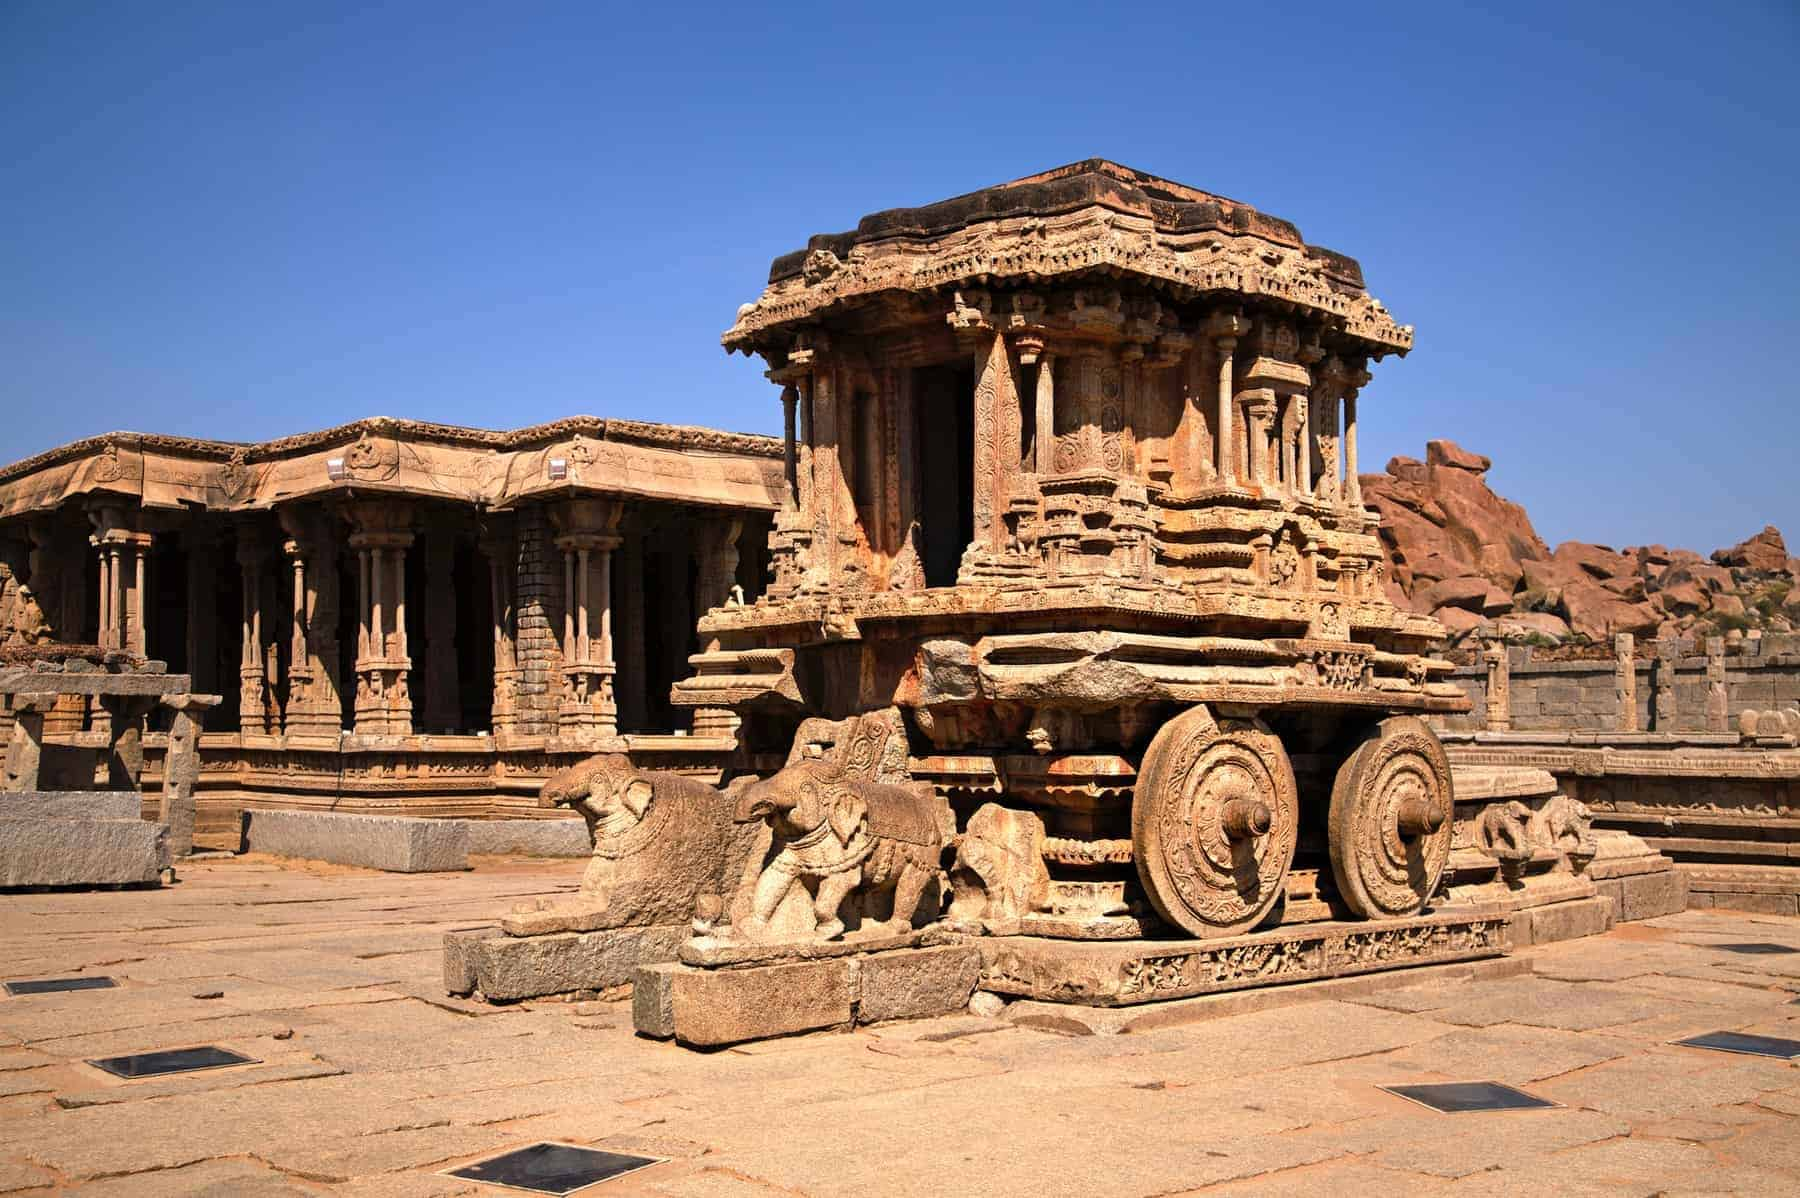 Stone chariot in the vittalla temple in Hampi. India